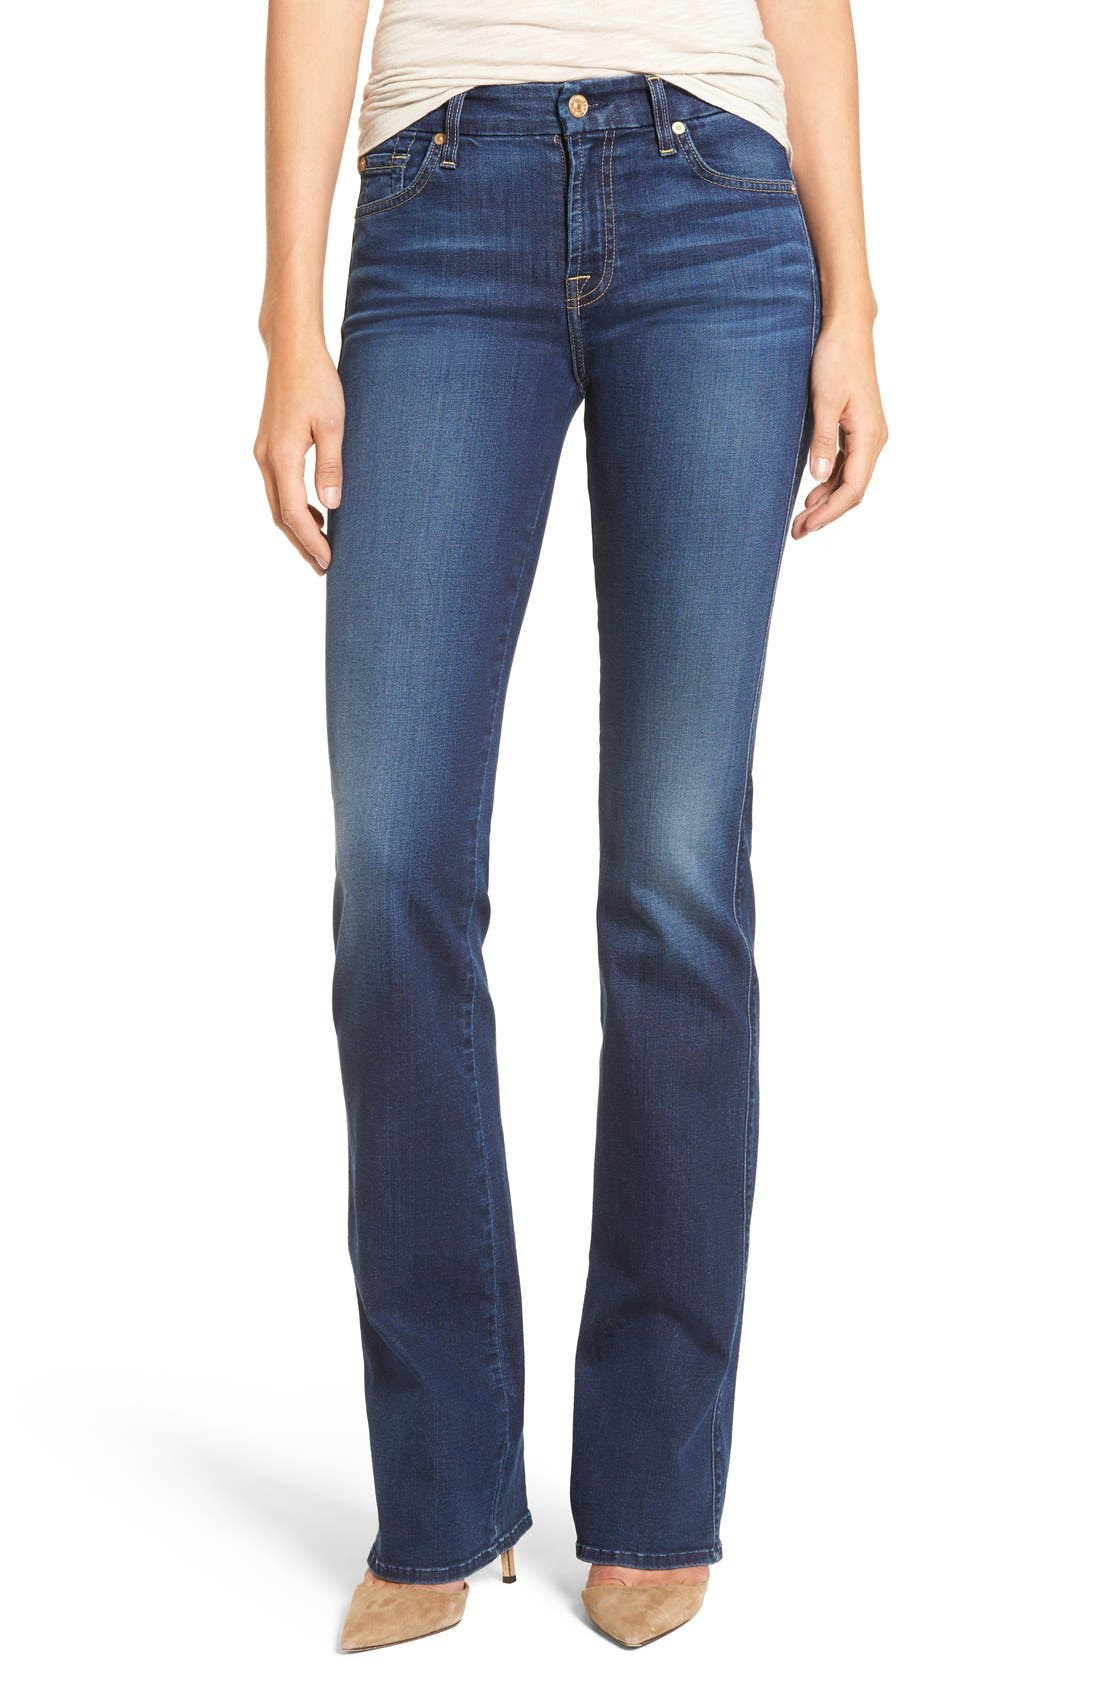 b(air) - Kimmie Bootcut Jeans,                         Main,                         color,